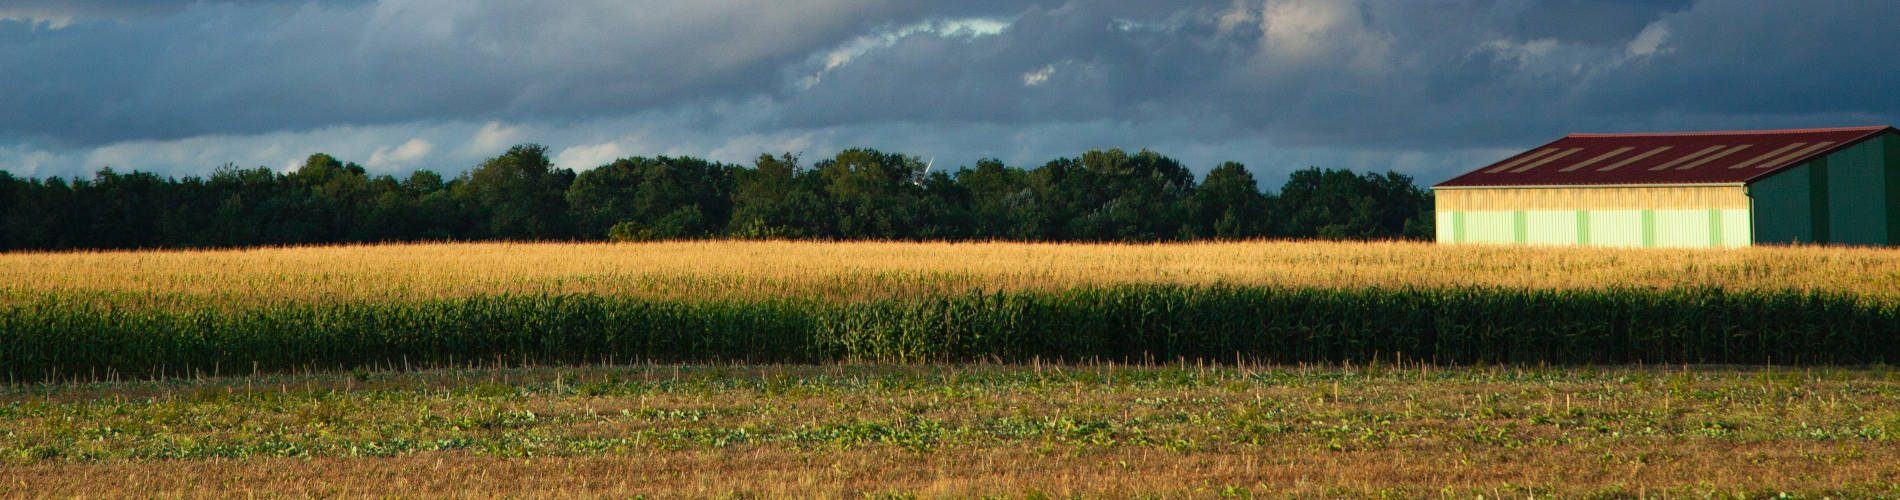 Fall applied herbicides